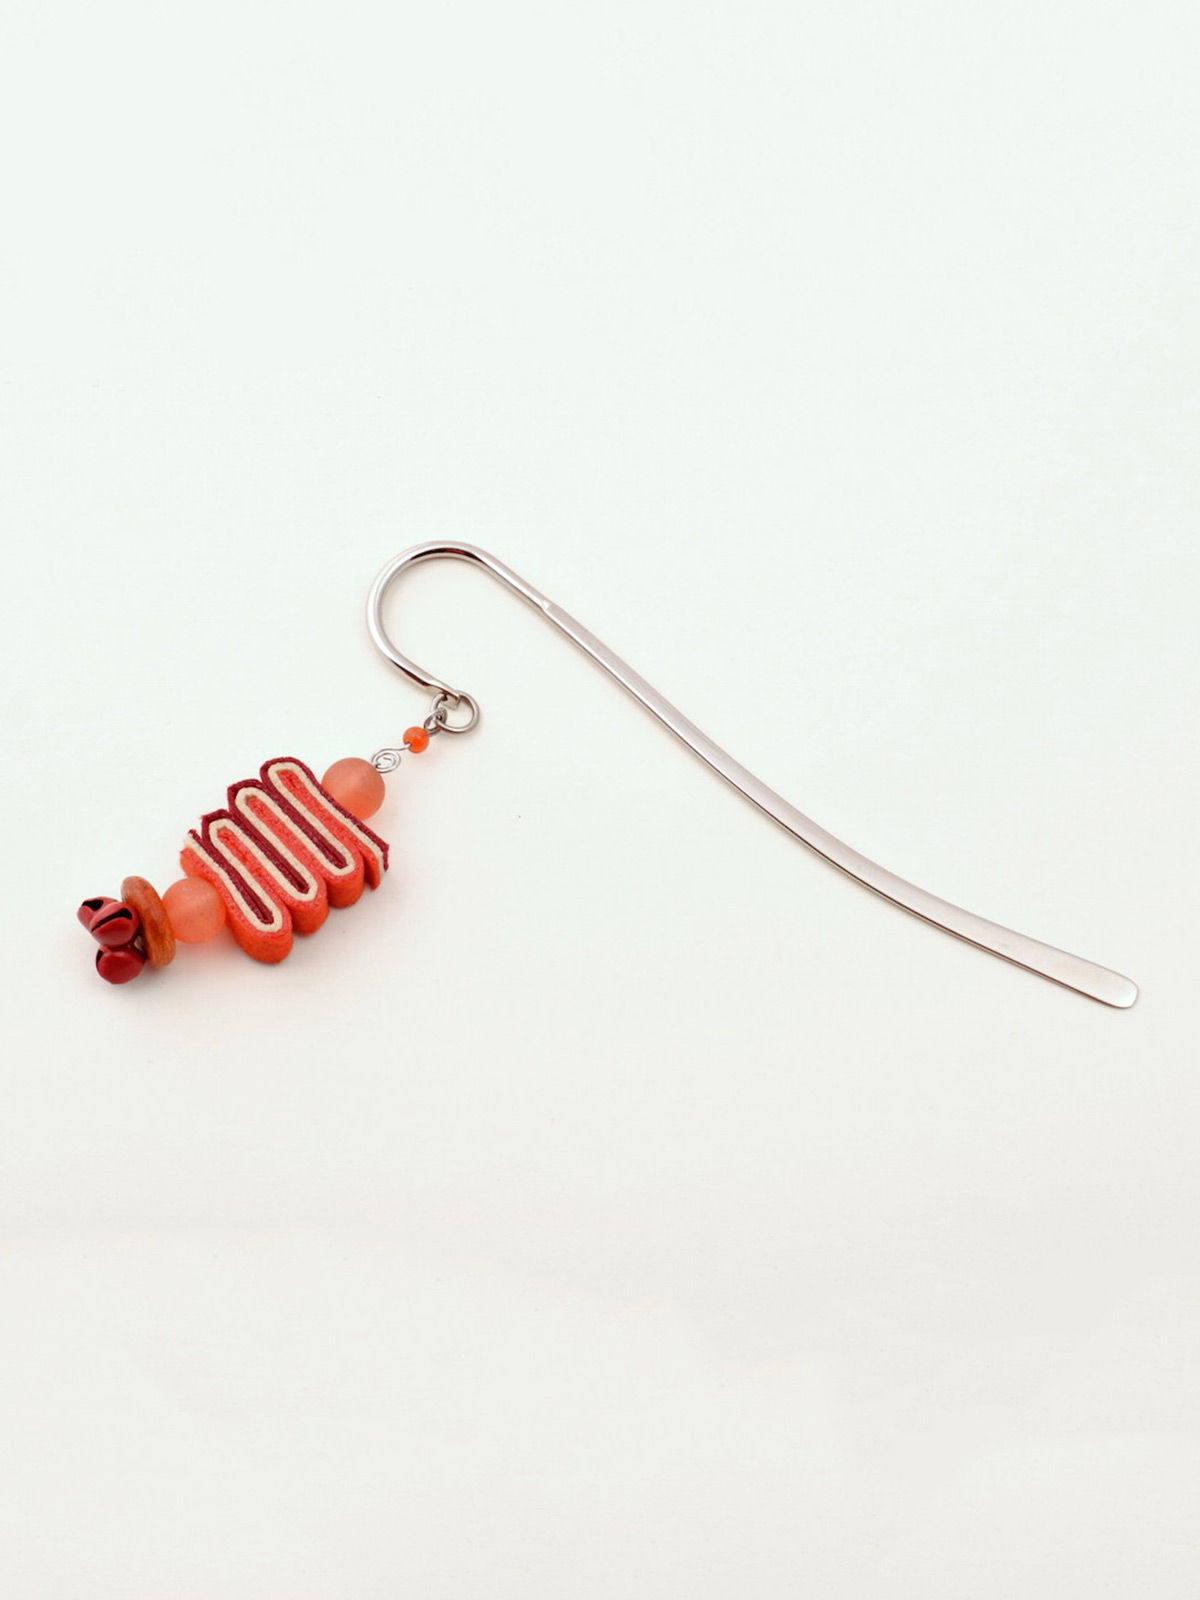 Bookworm Bookmark - Red